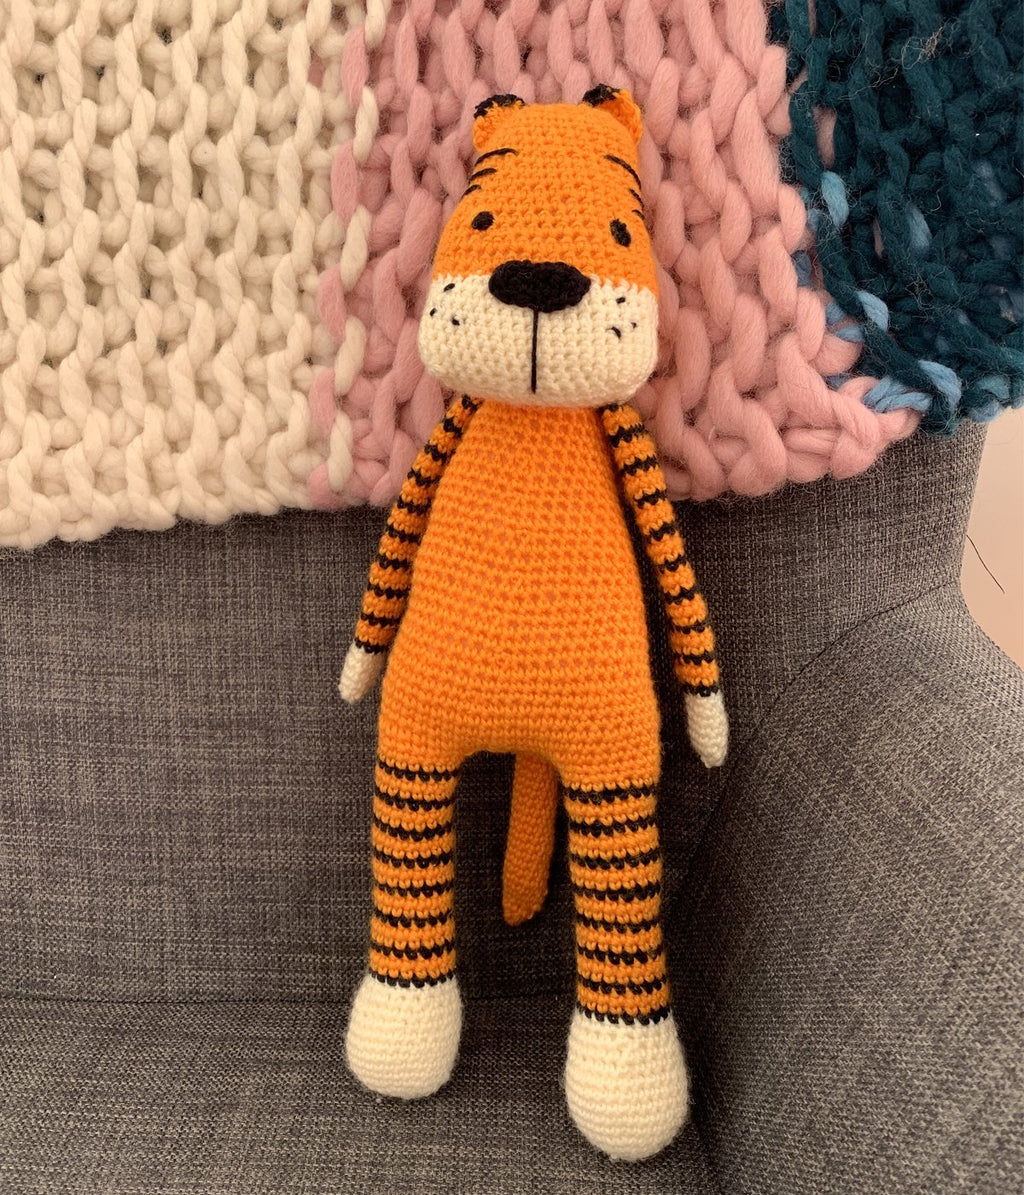 Paisley Lounge Presents Amigurumi Tiger - Truzealia